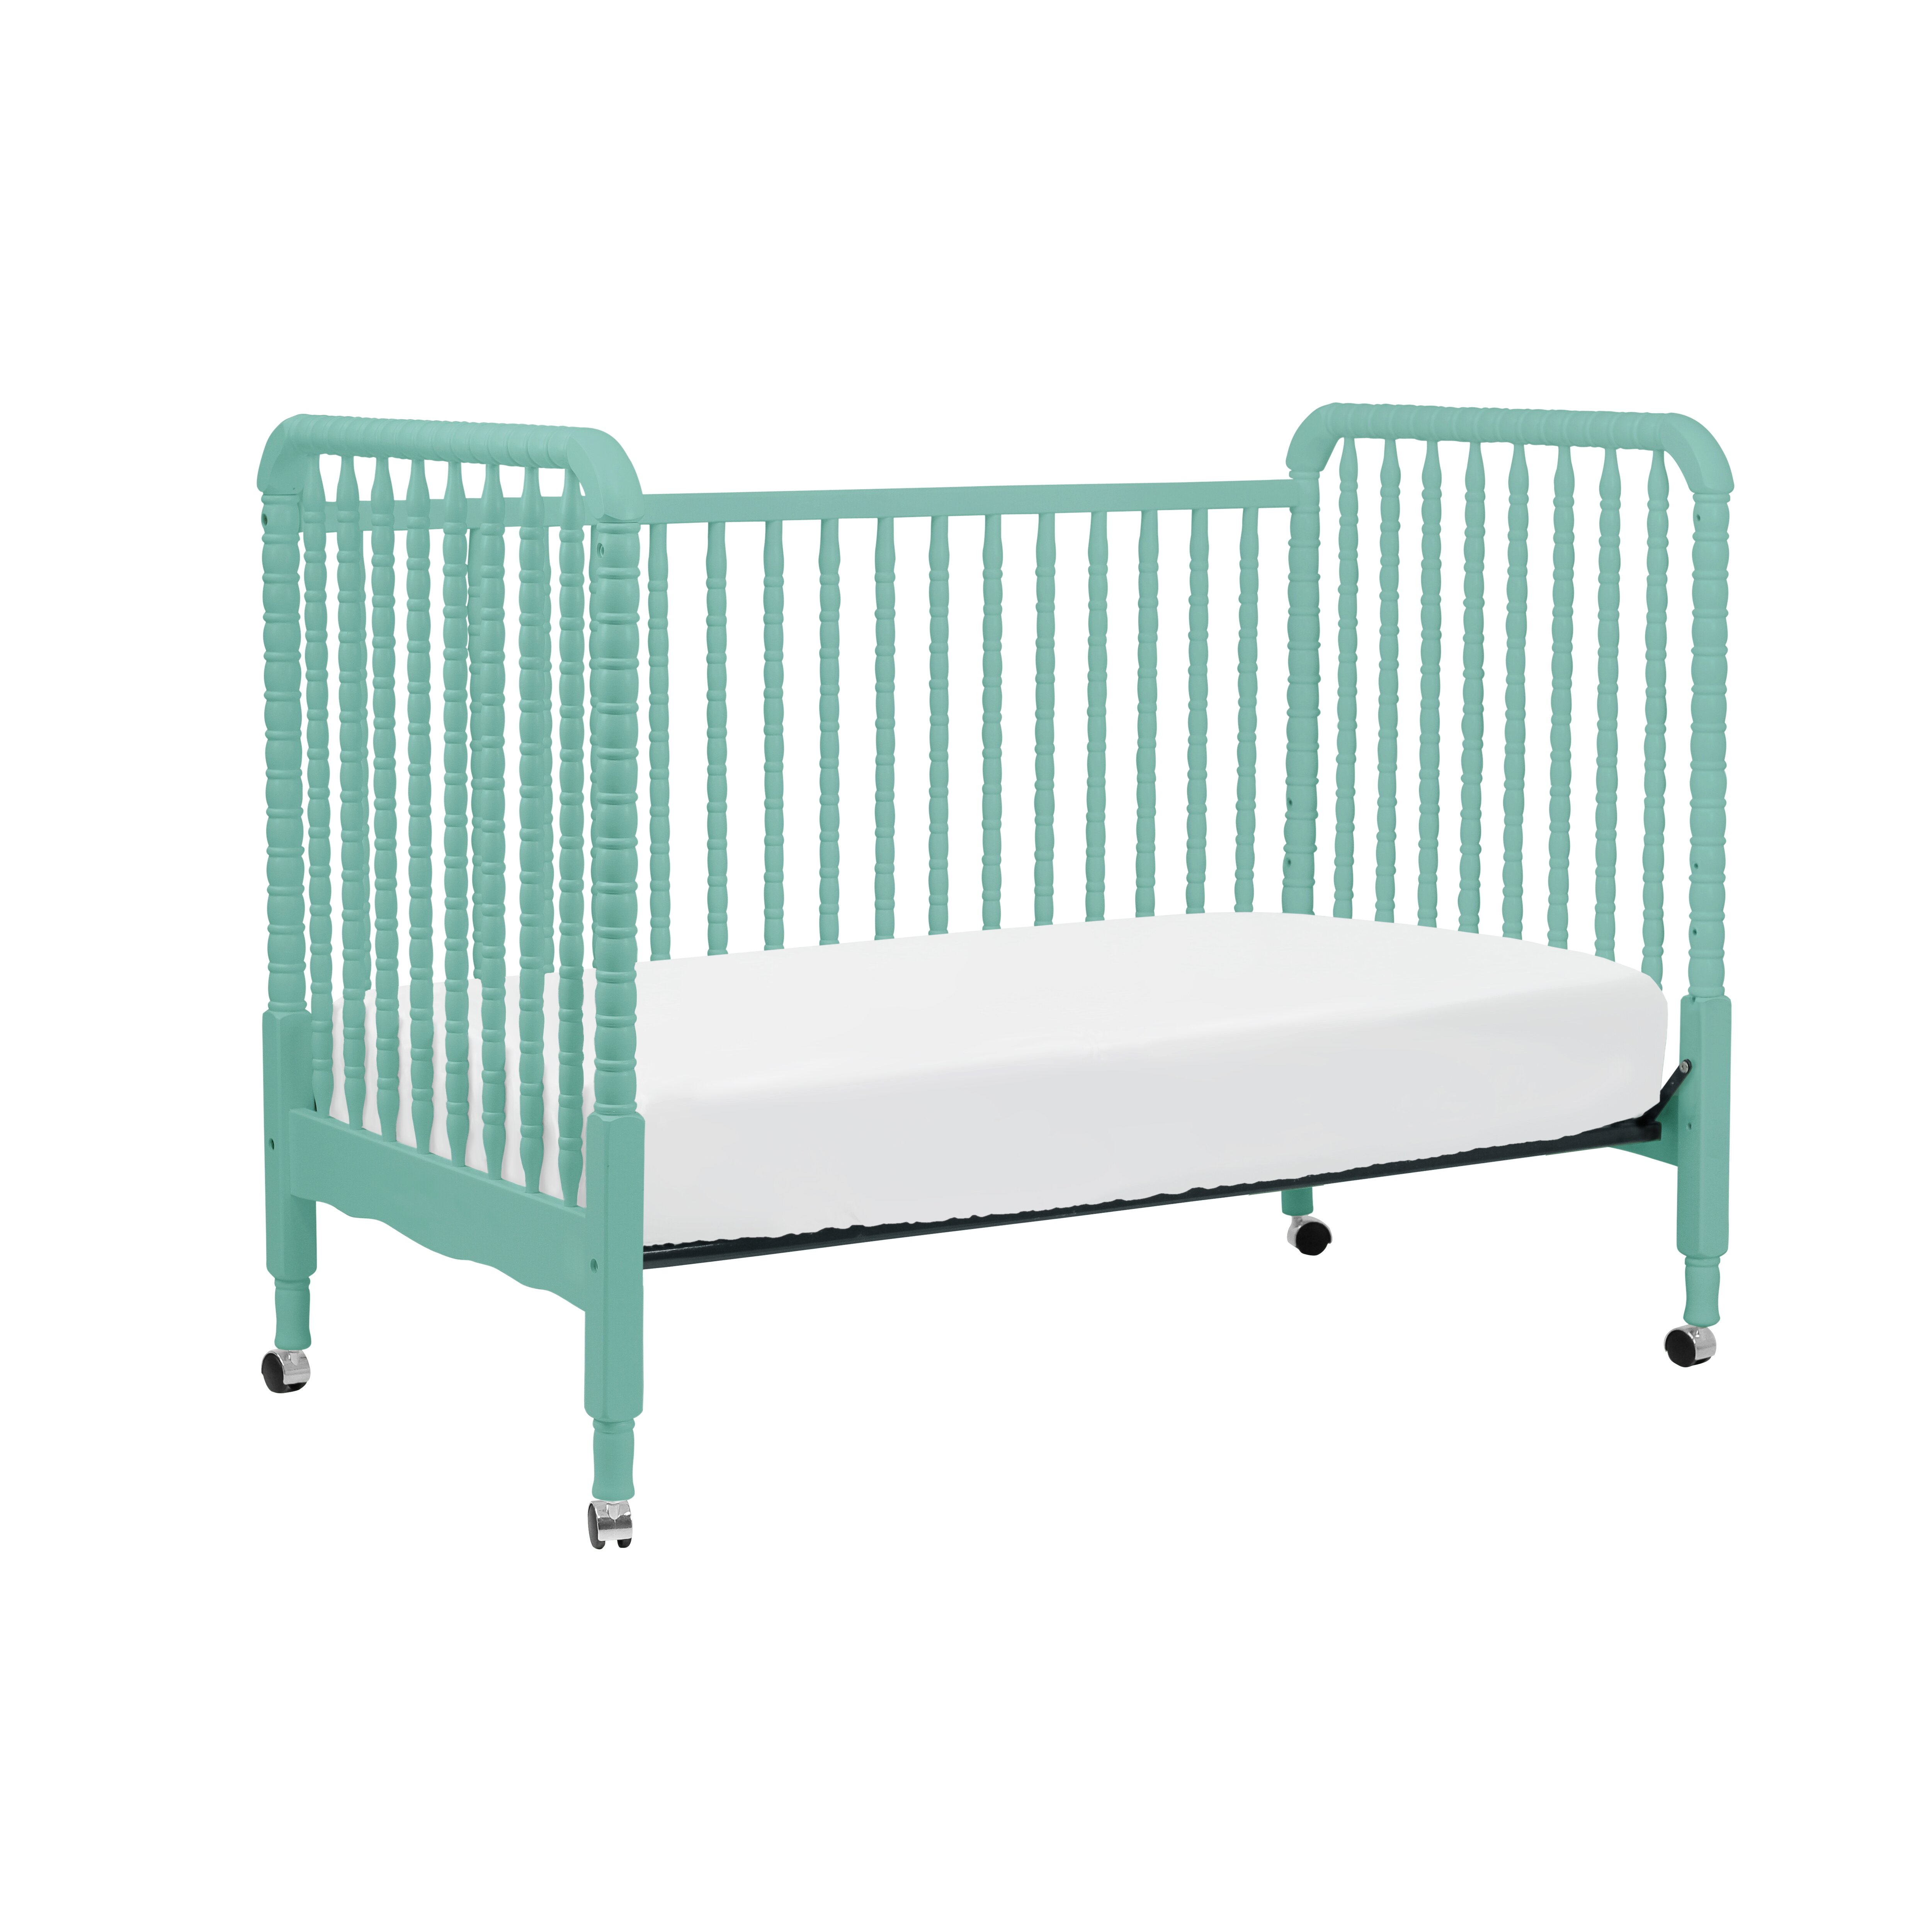 Jenny lind crib for sale - Davinci Jenny Lind 3 In 1 Convertible Crib With Conversion Kit